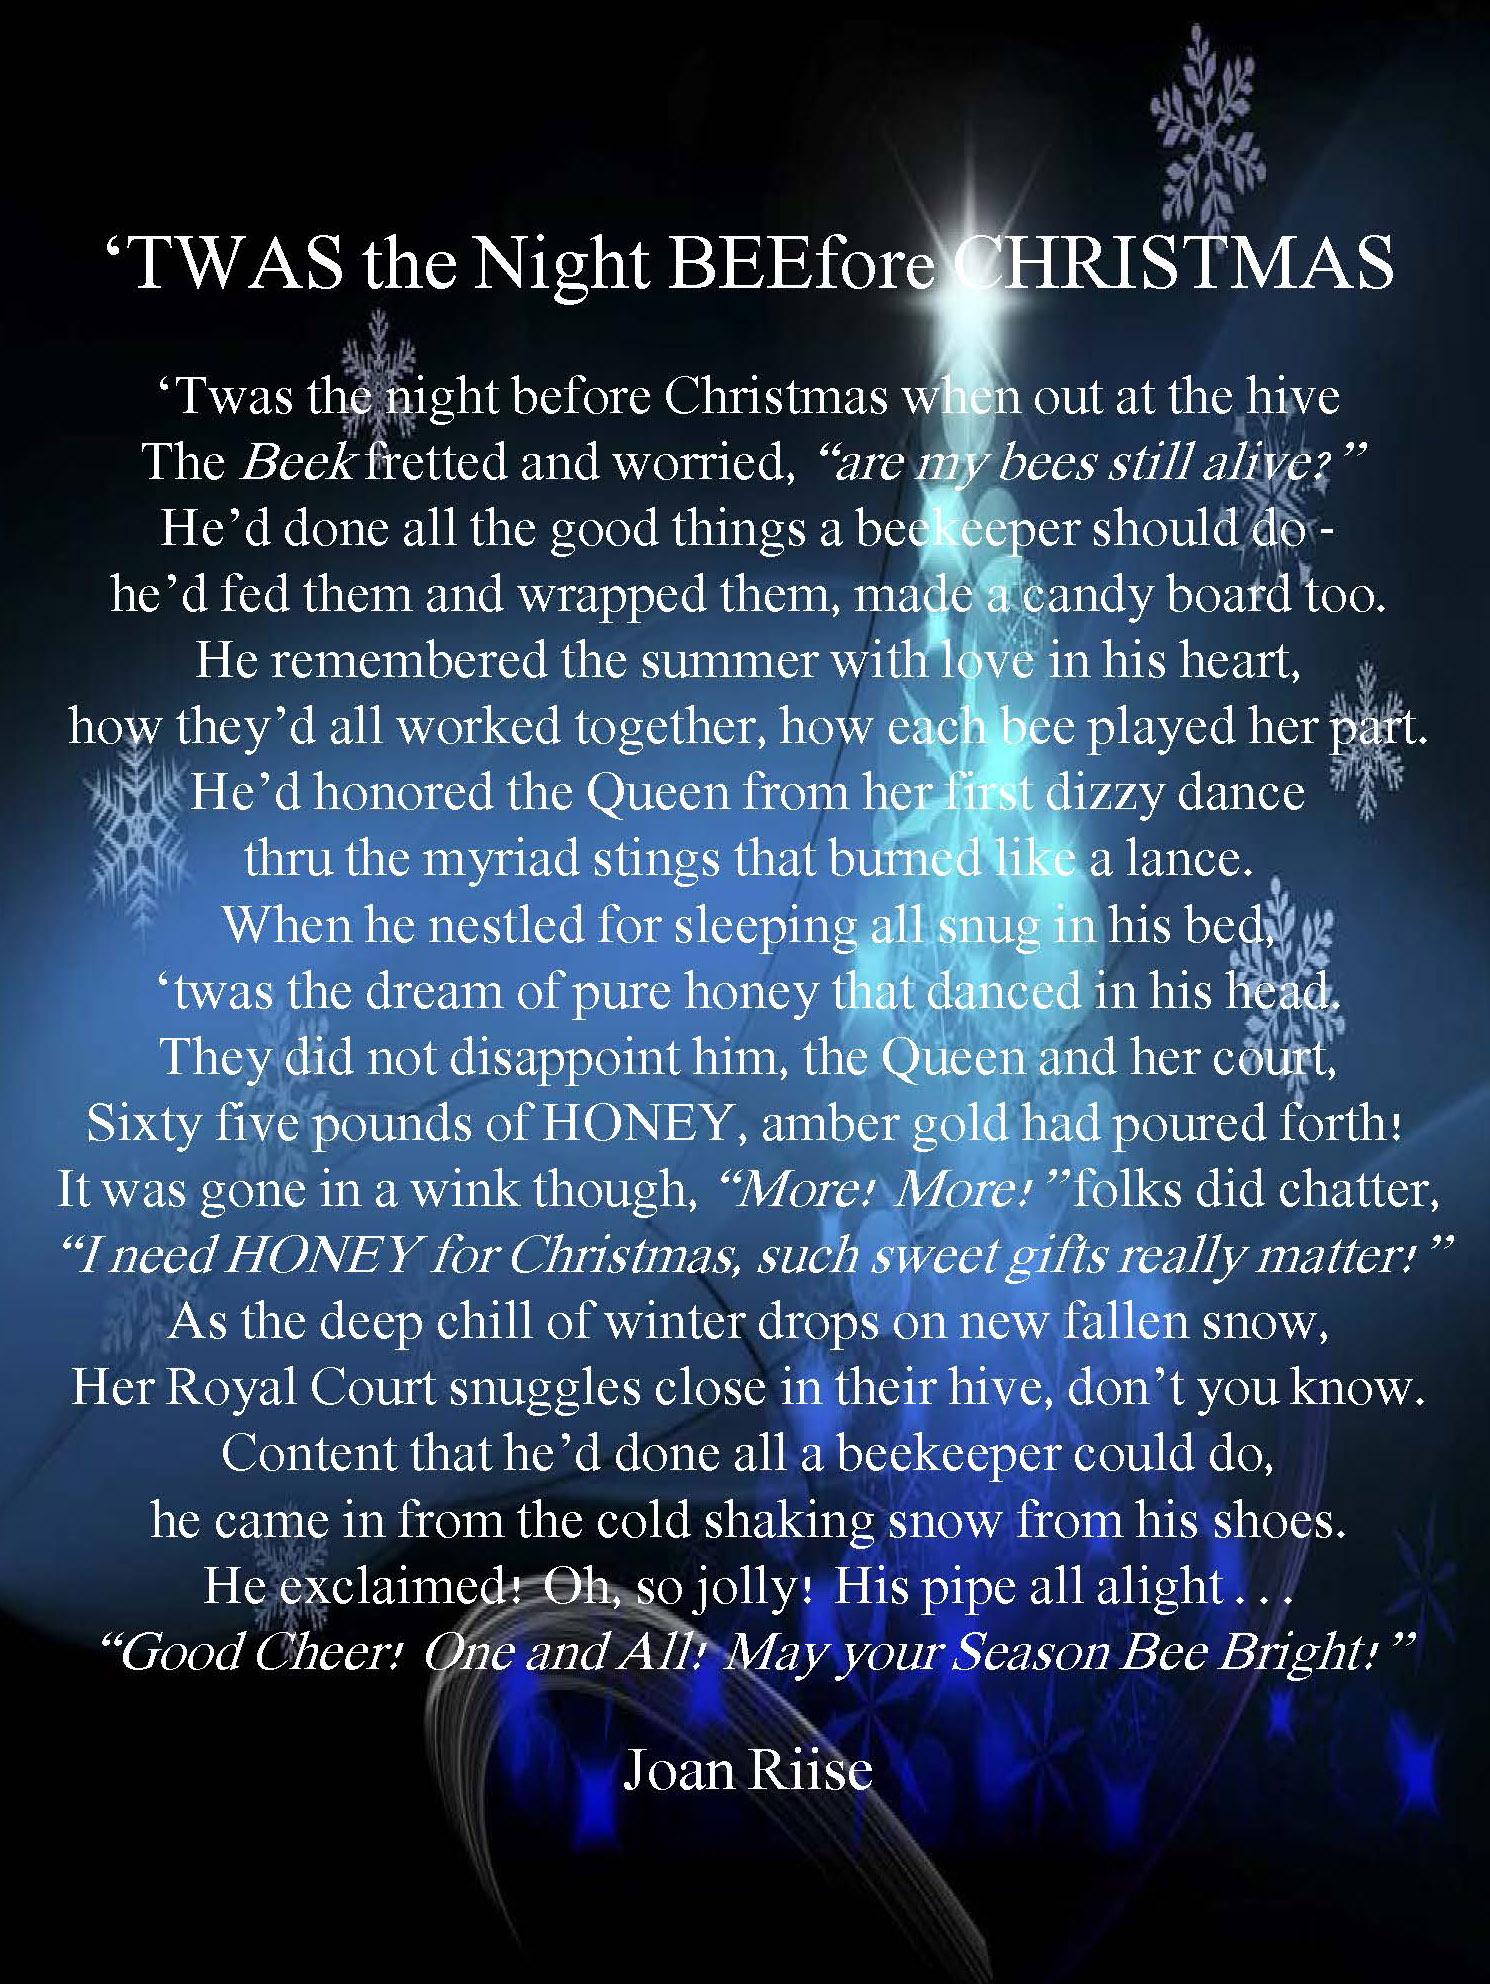 CATCH THE BUZZ – 'Twas the Night BEEfore Christmas